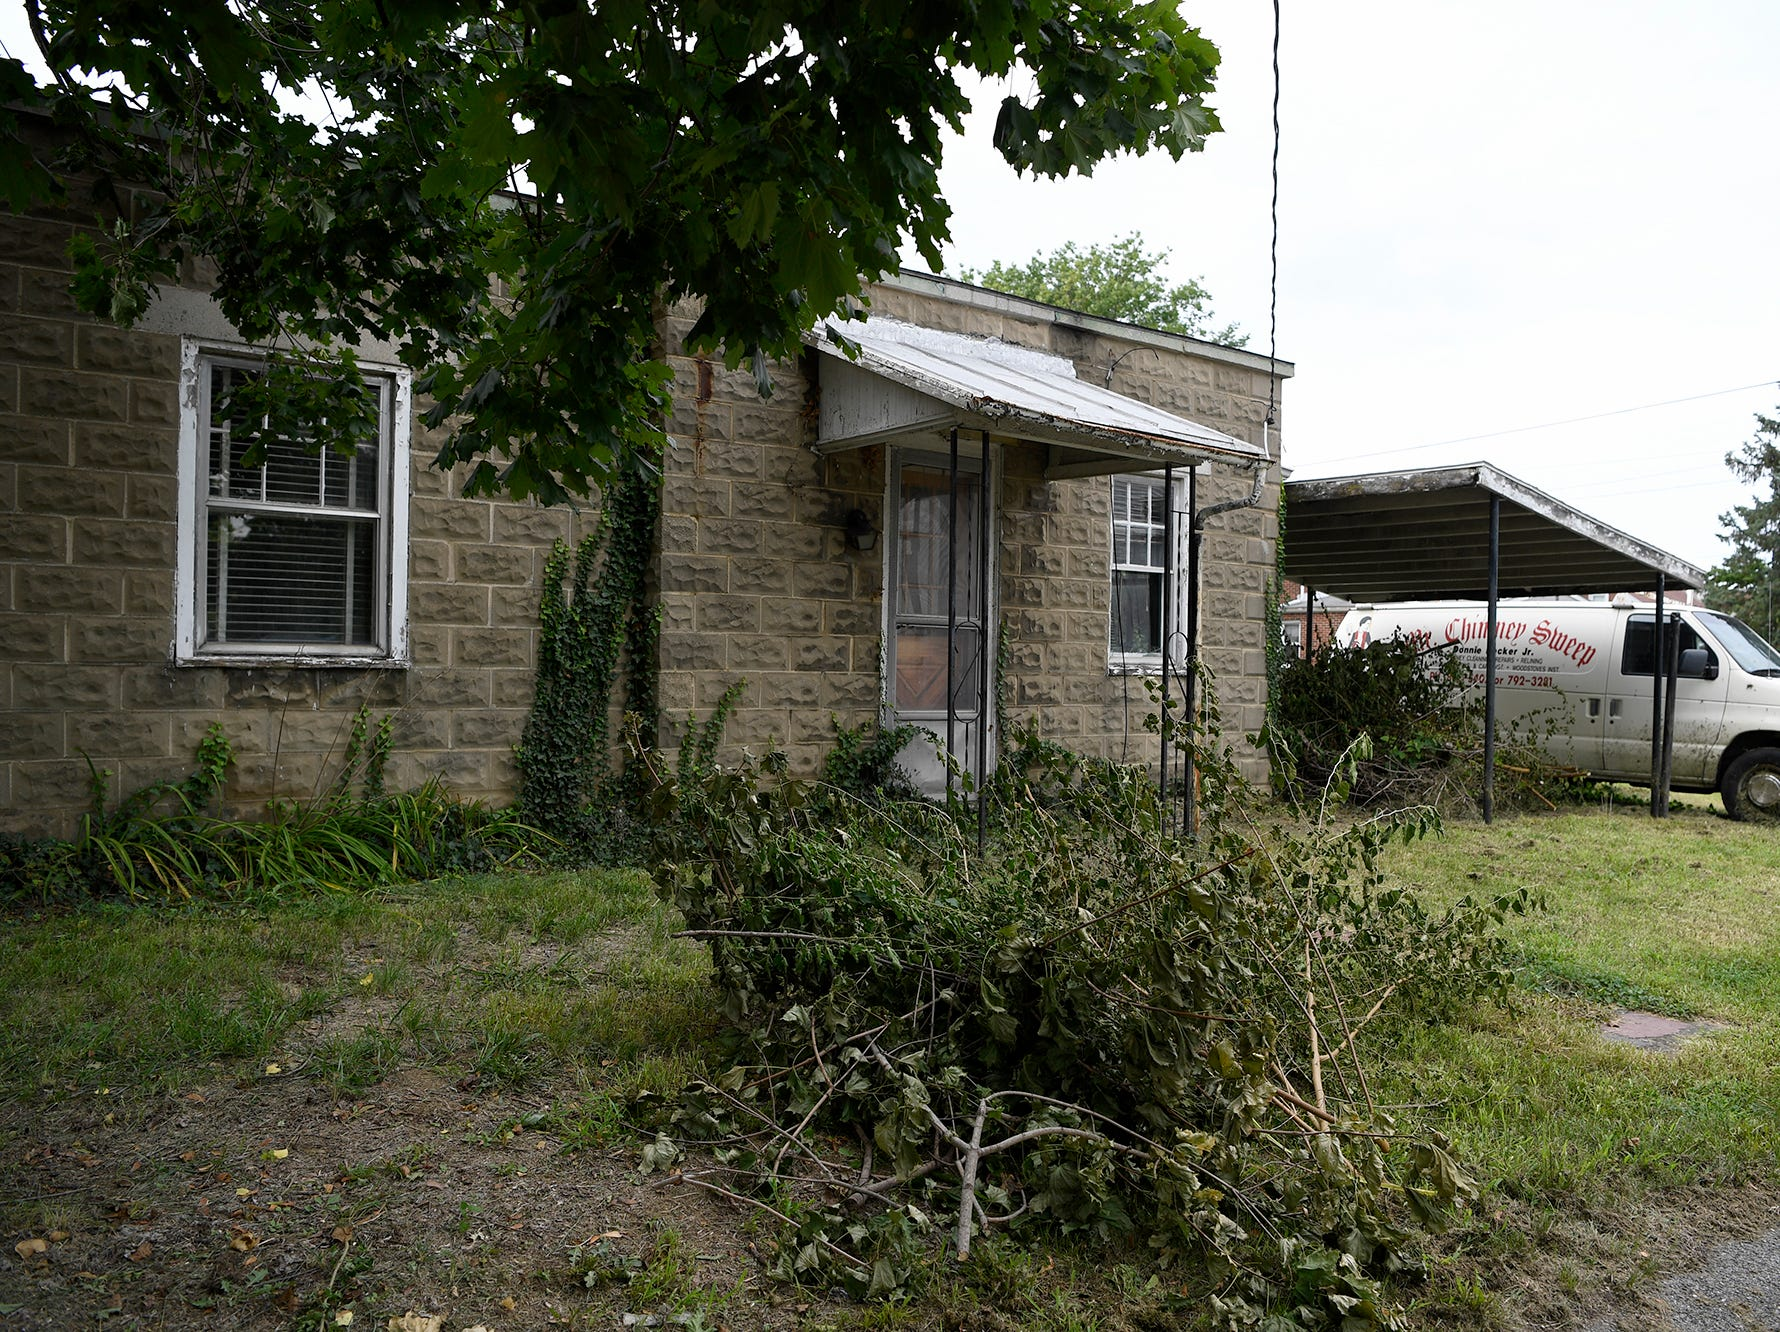 West York Borough Codes Enforcement Officer James Hoke says the push on blight enforcement is working, with some owners cleaning up their properties within 24 hours of notice, Wednesday, August 14, 2018. John A. Pavoncello photo